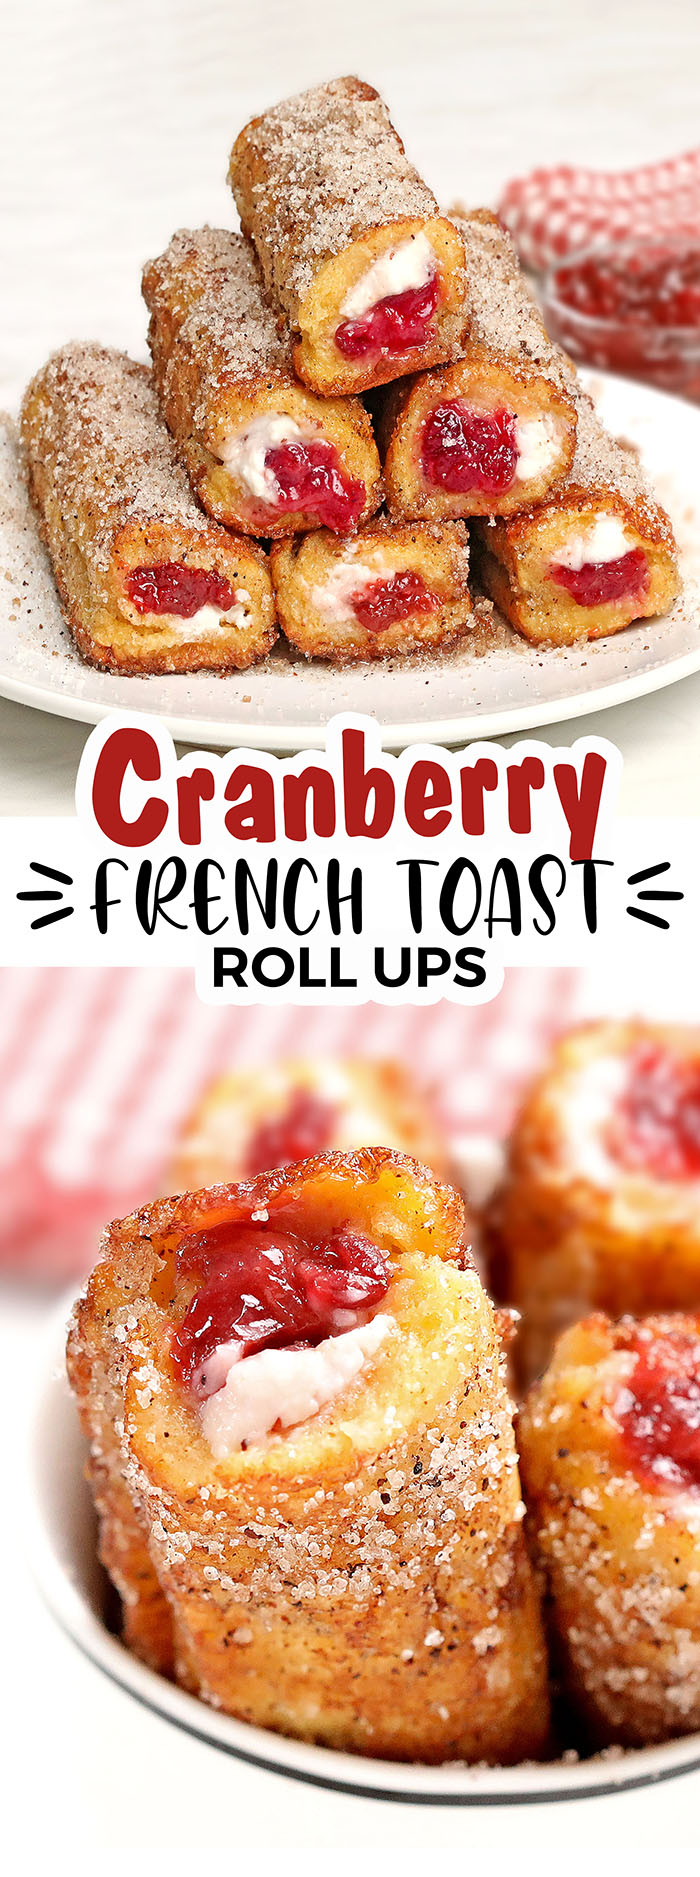 Cranberry French Toast Roll Ups are a creative holiday breakfast, snack or dessert! it's a great way to use up cranberry sauce leftovers.